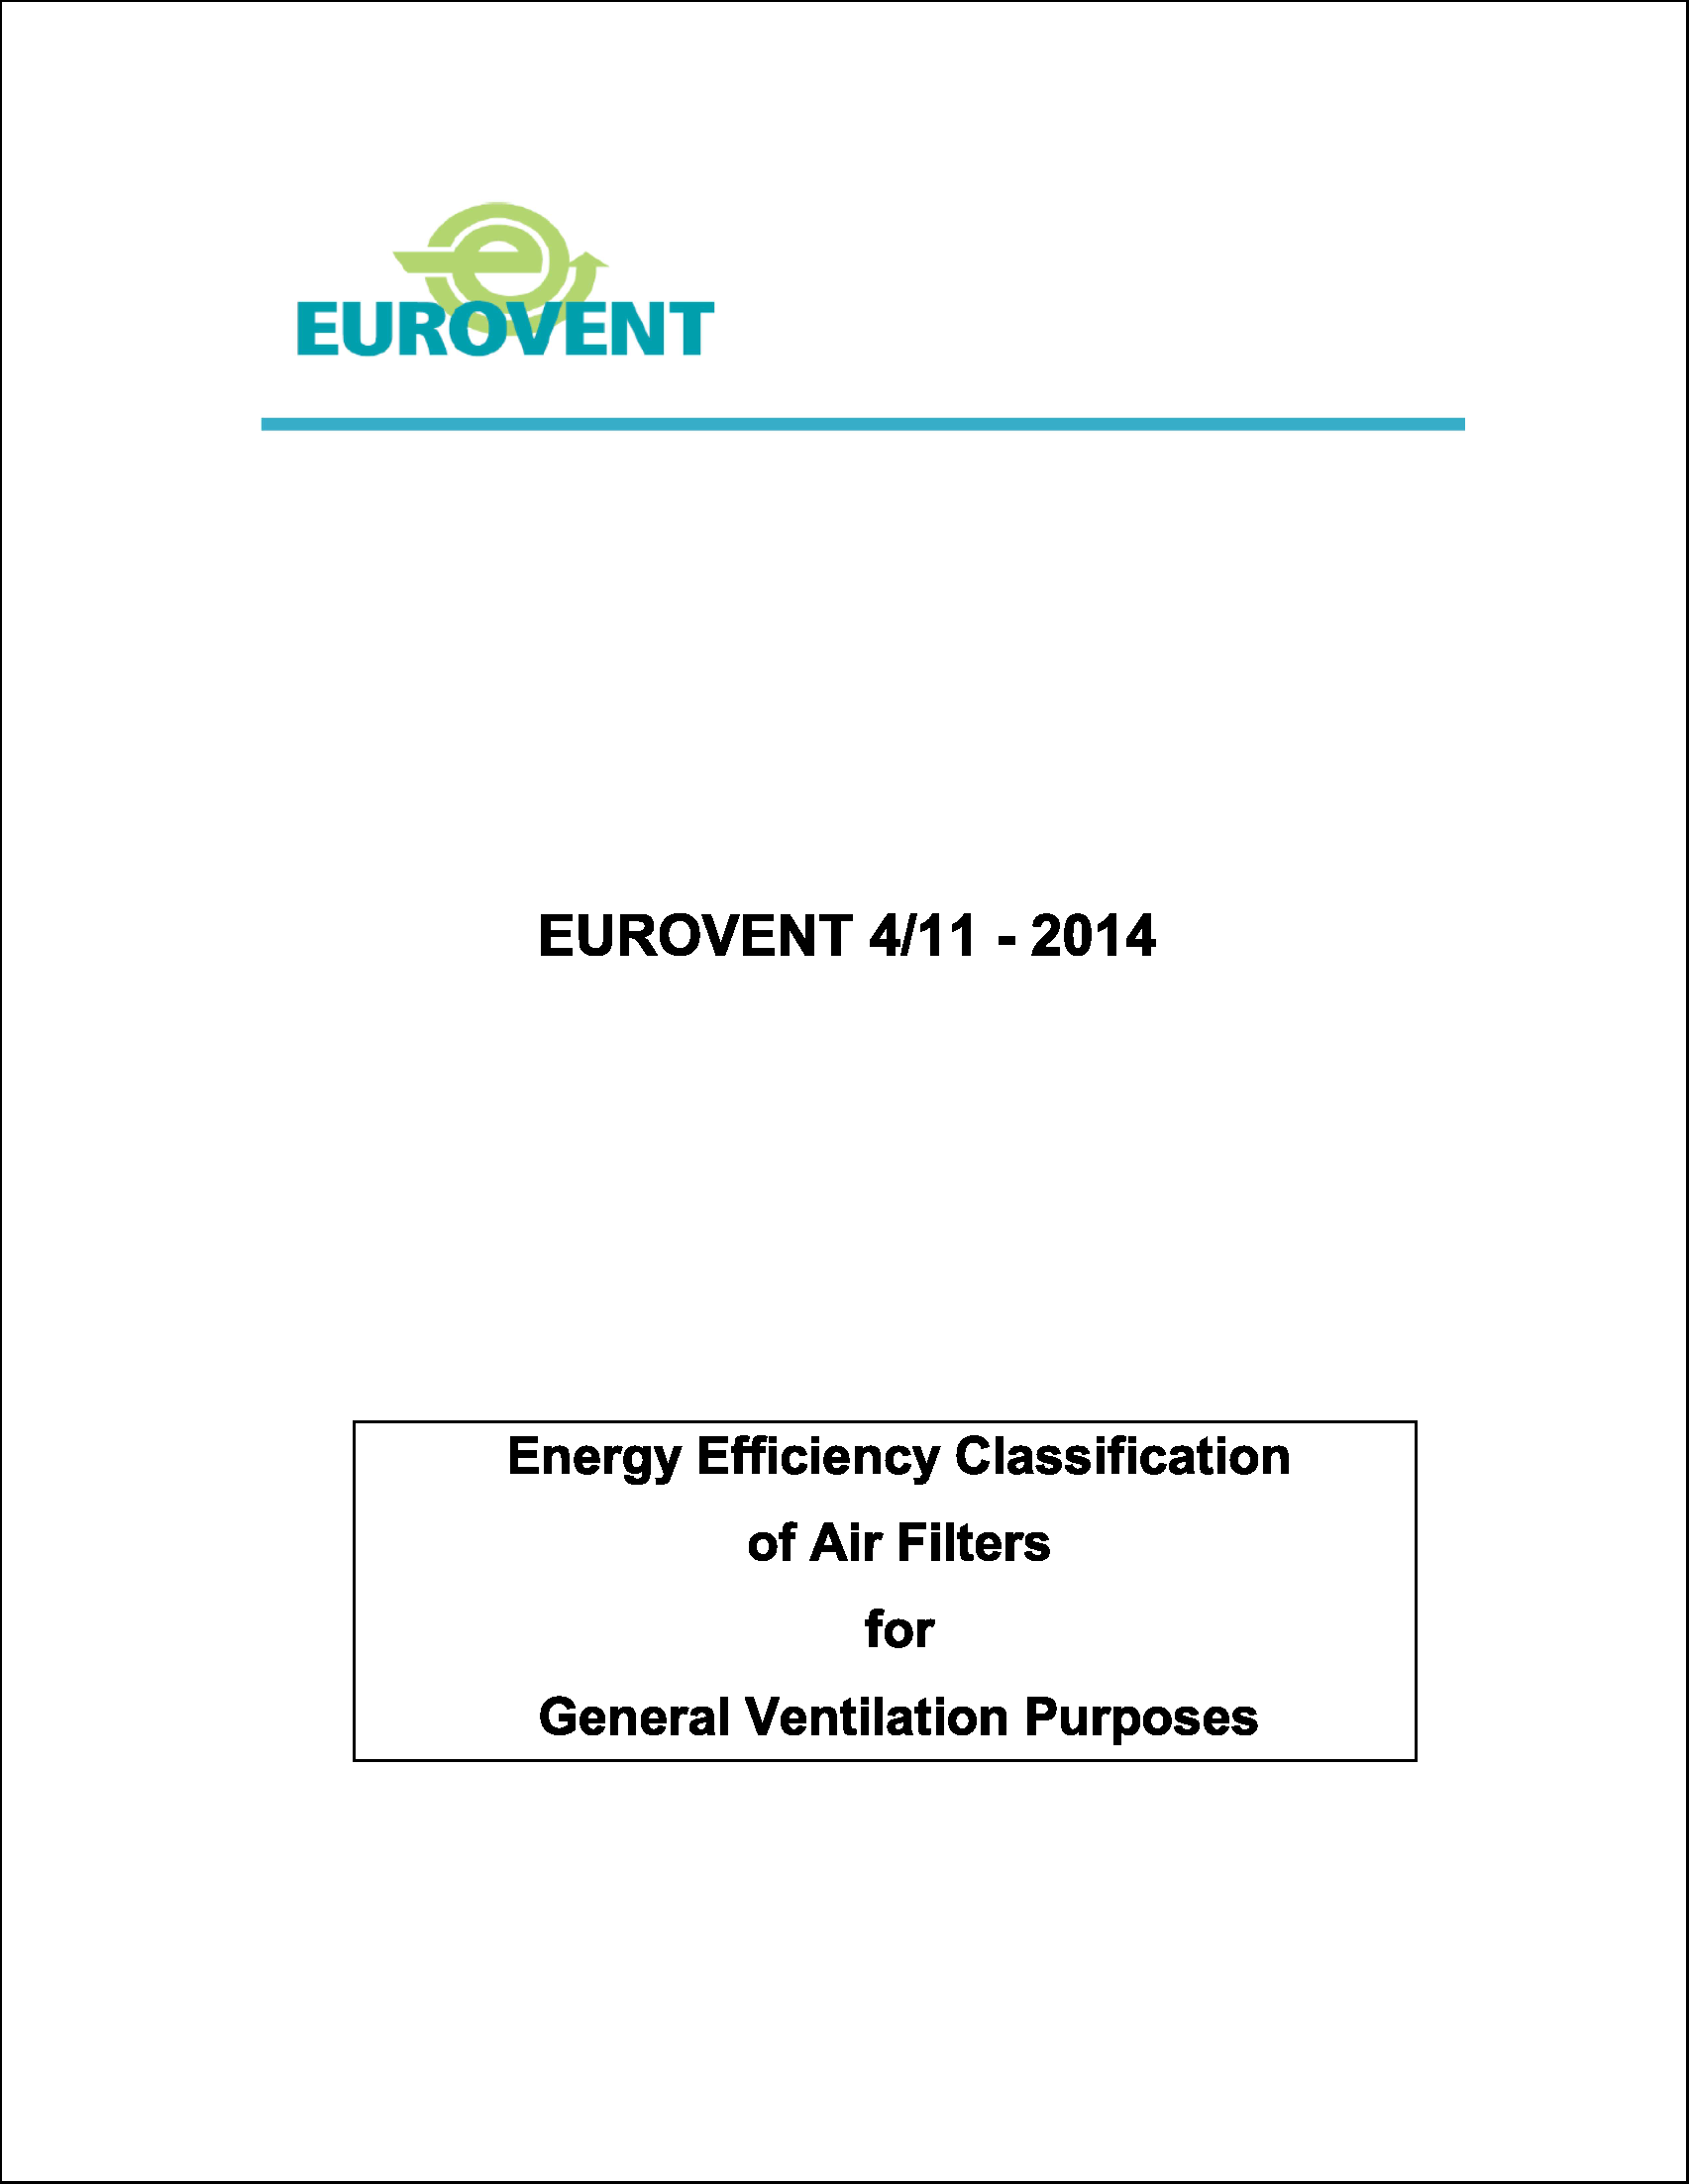 2014 - Method of testing air filters used in general ventilation and recommended classification